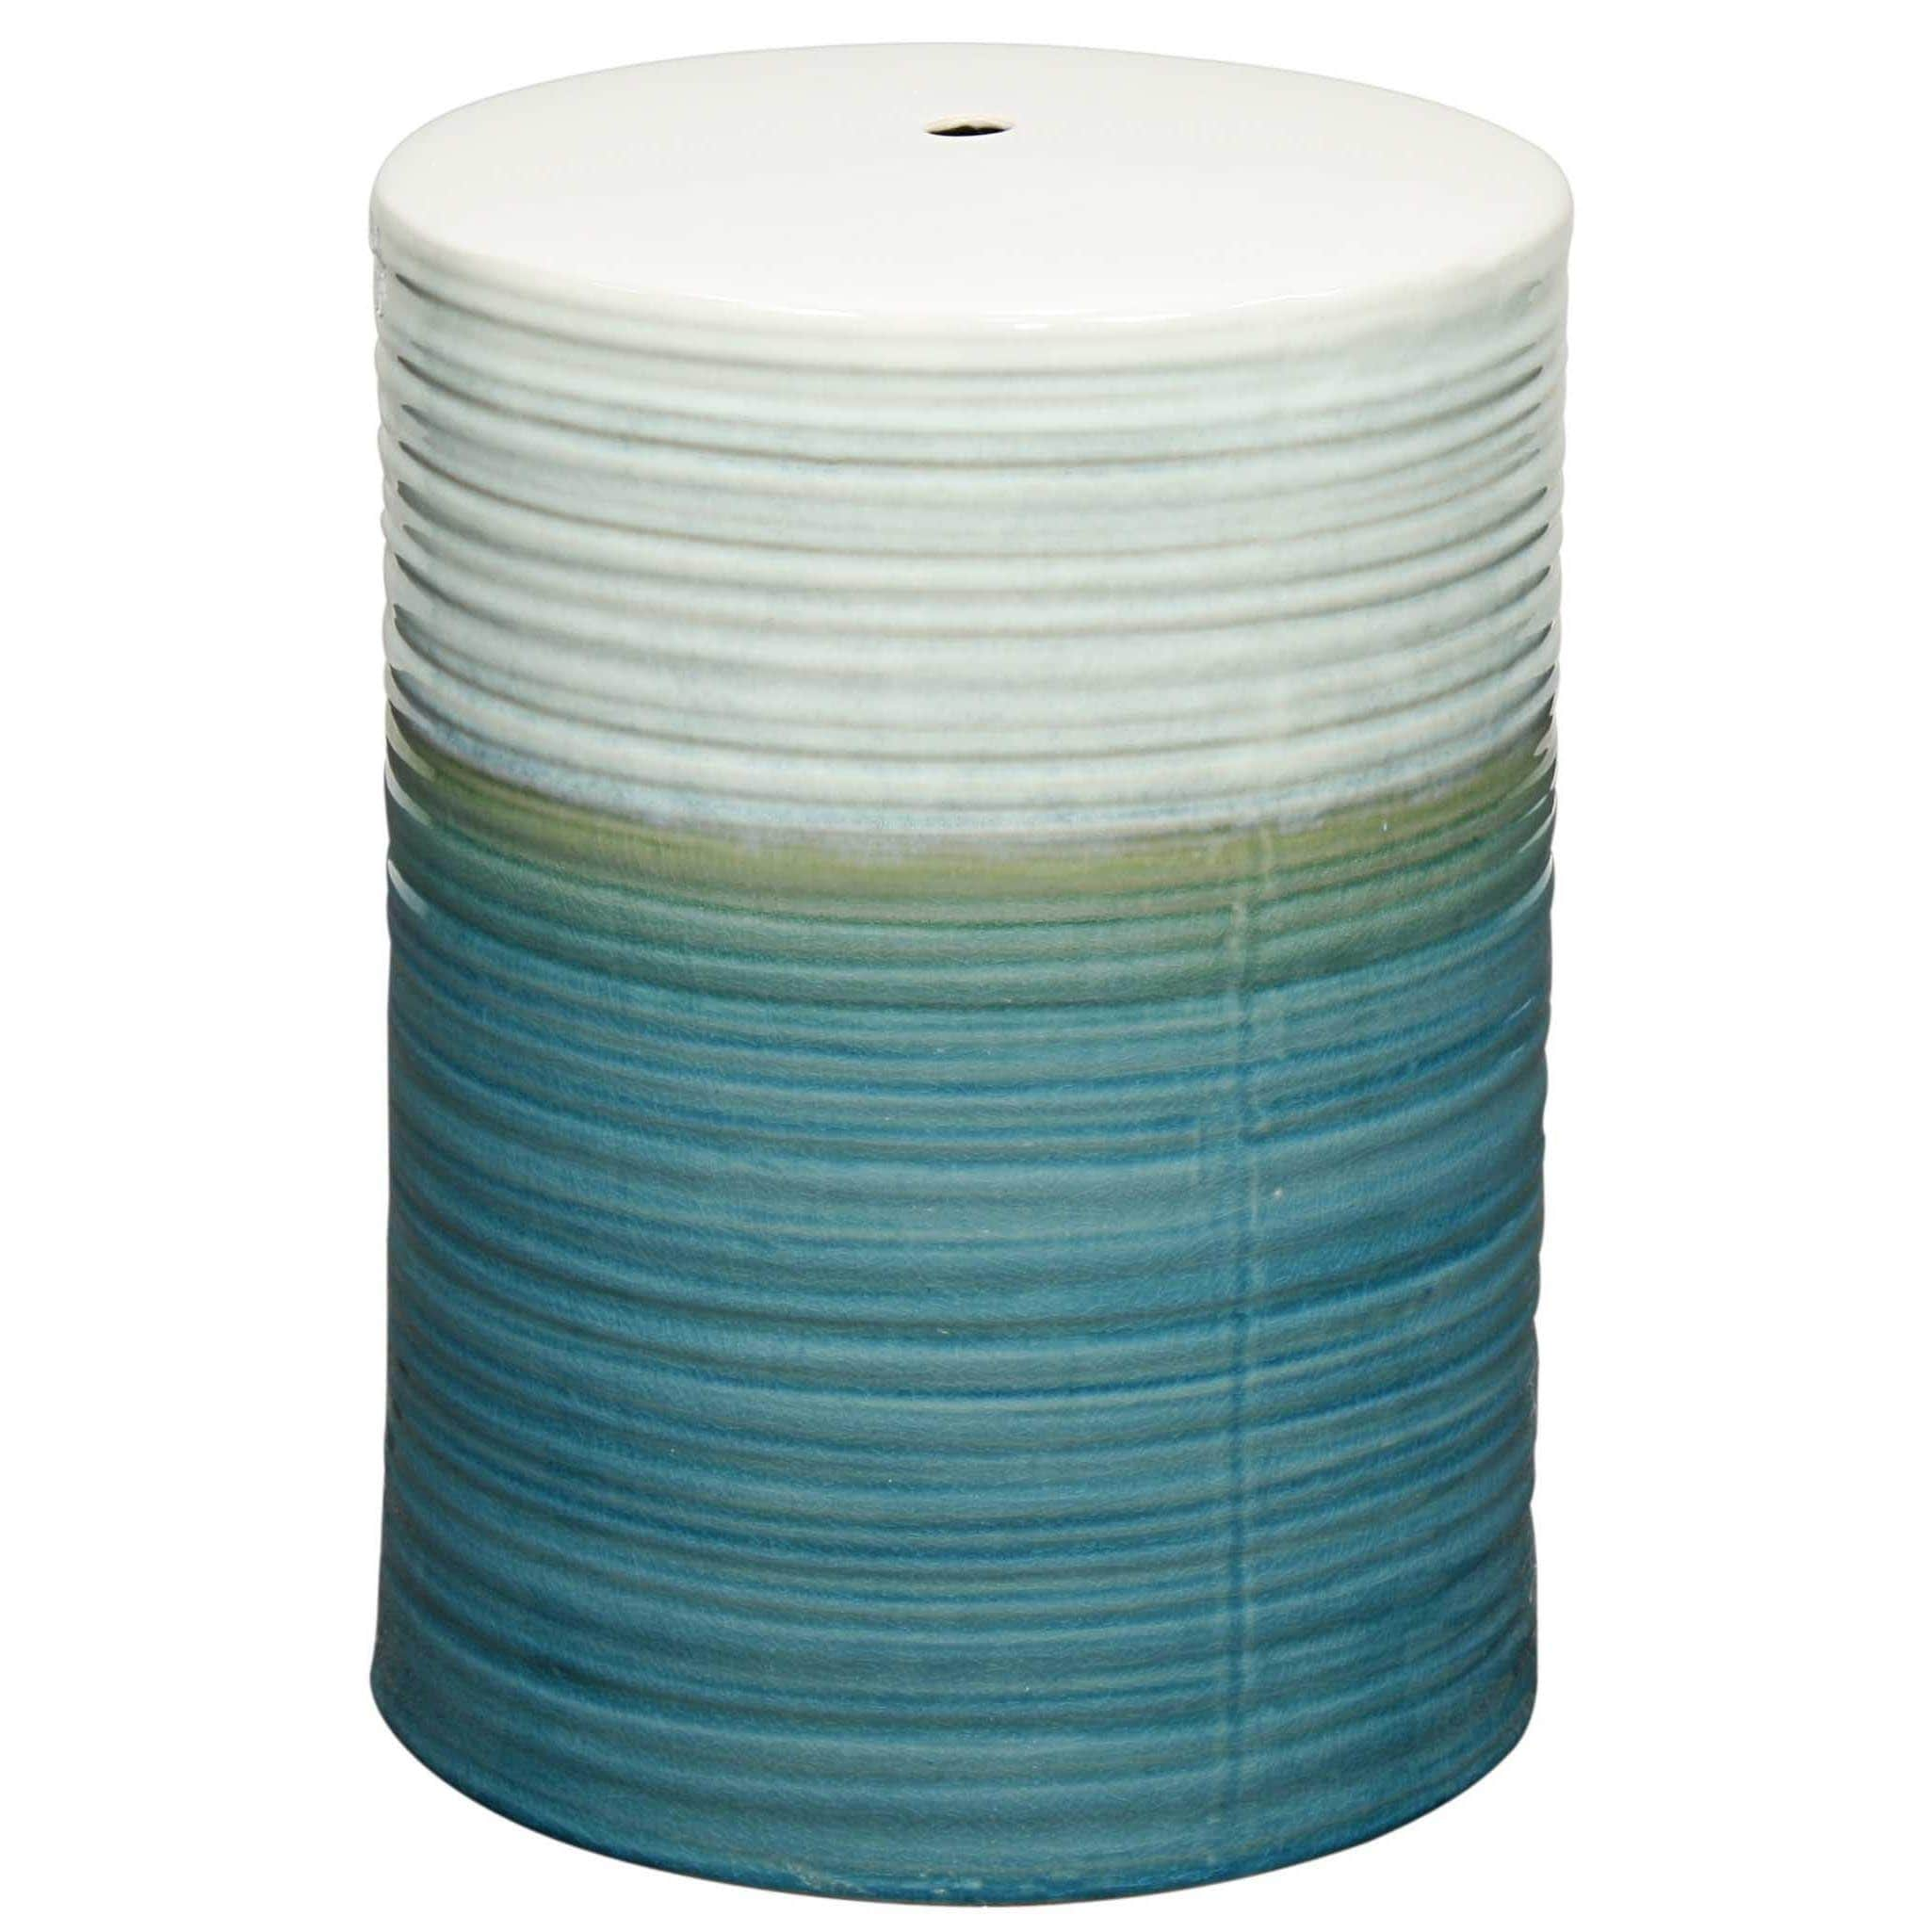 Multicolor Swirl Ceramic Garden Stool  Free Shipping Today